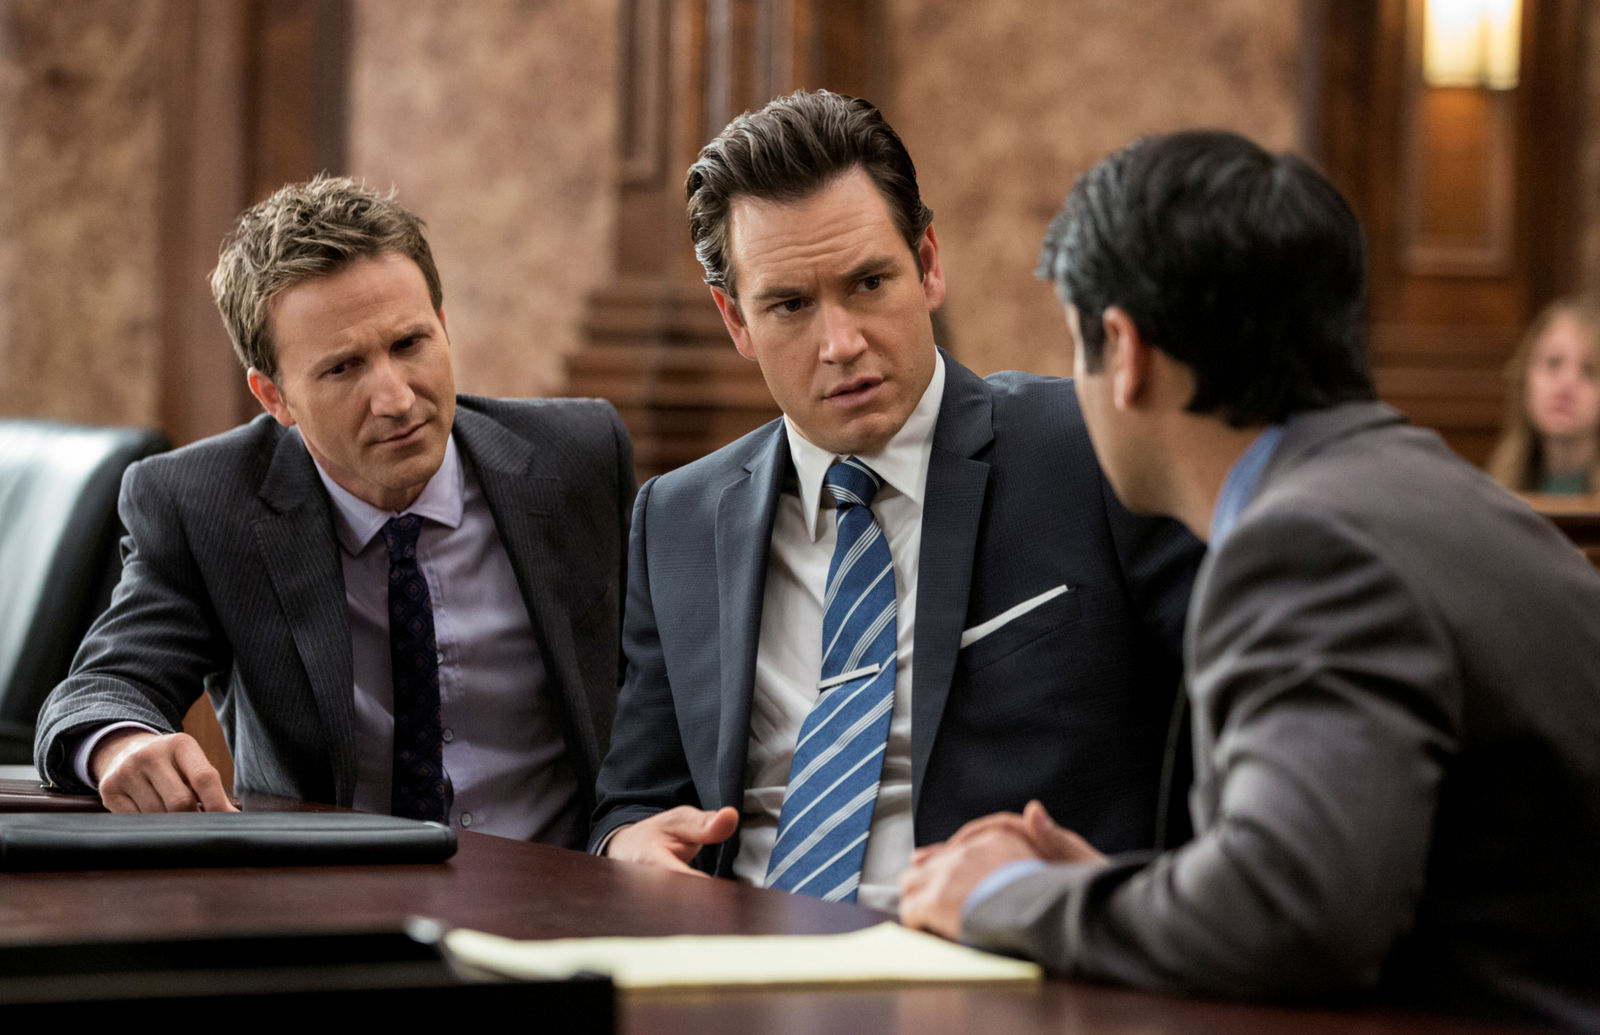 Franklin and Bash Season 3 Finale Mark Paul Gosselaar and Breckin Meyer